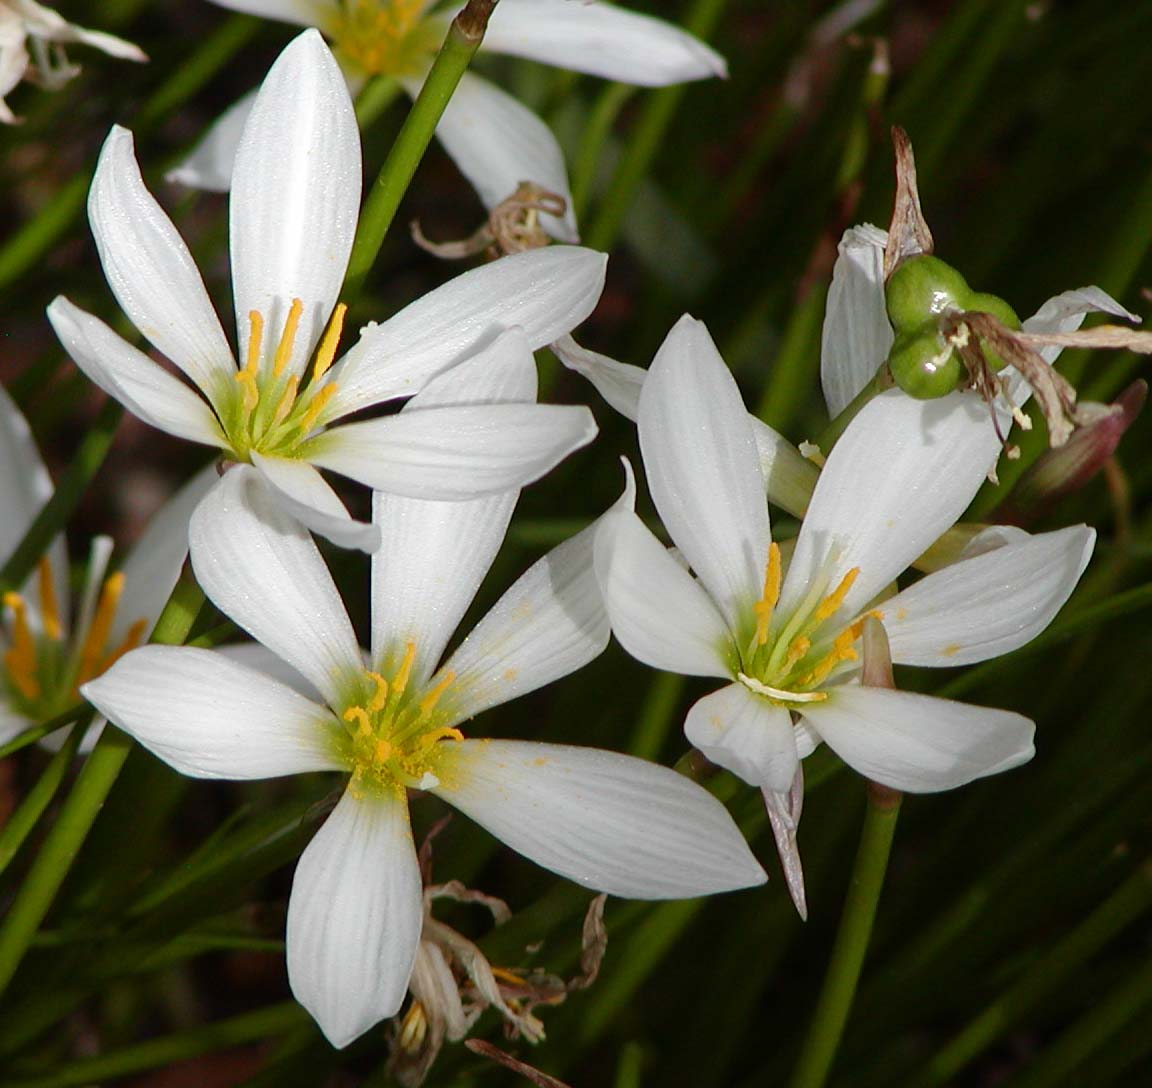 Zephyranthes wikipedia mightylinksfo